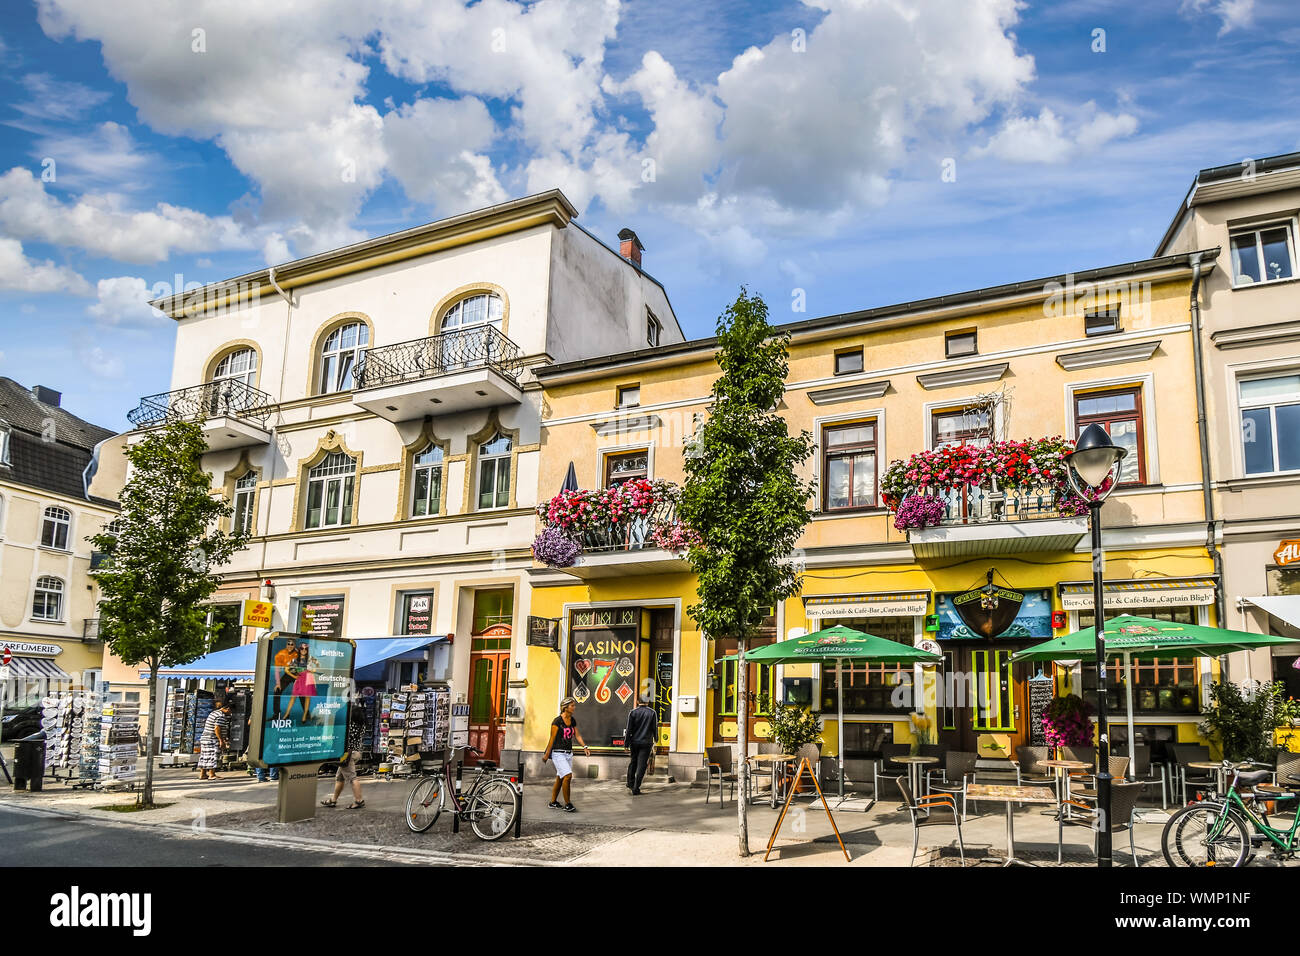 Tourists and locals enjoy a partly cloudy summer day in the coastal resort of Warnemunde, Germany, on the shores of the Baltic Sea. Stock Photo